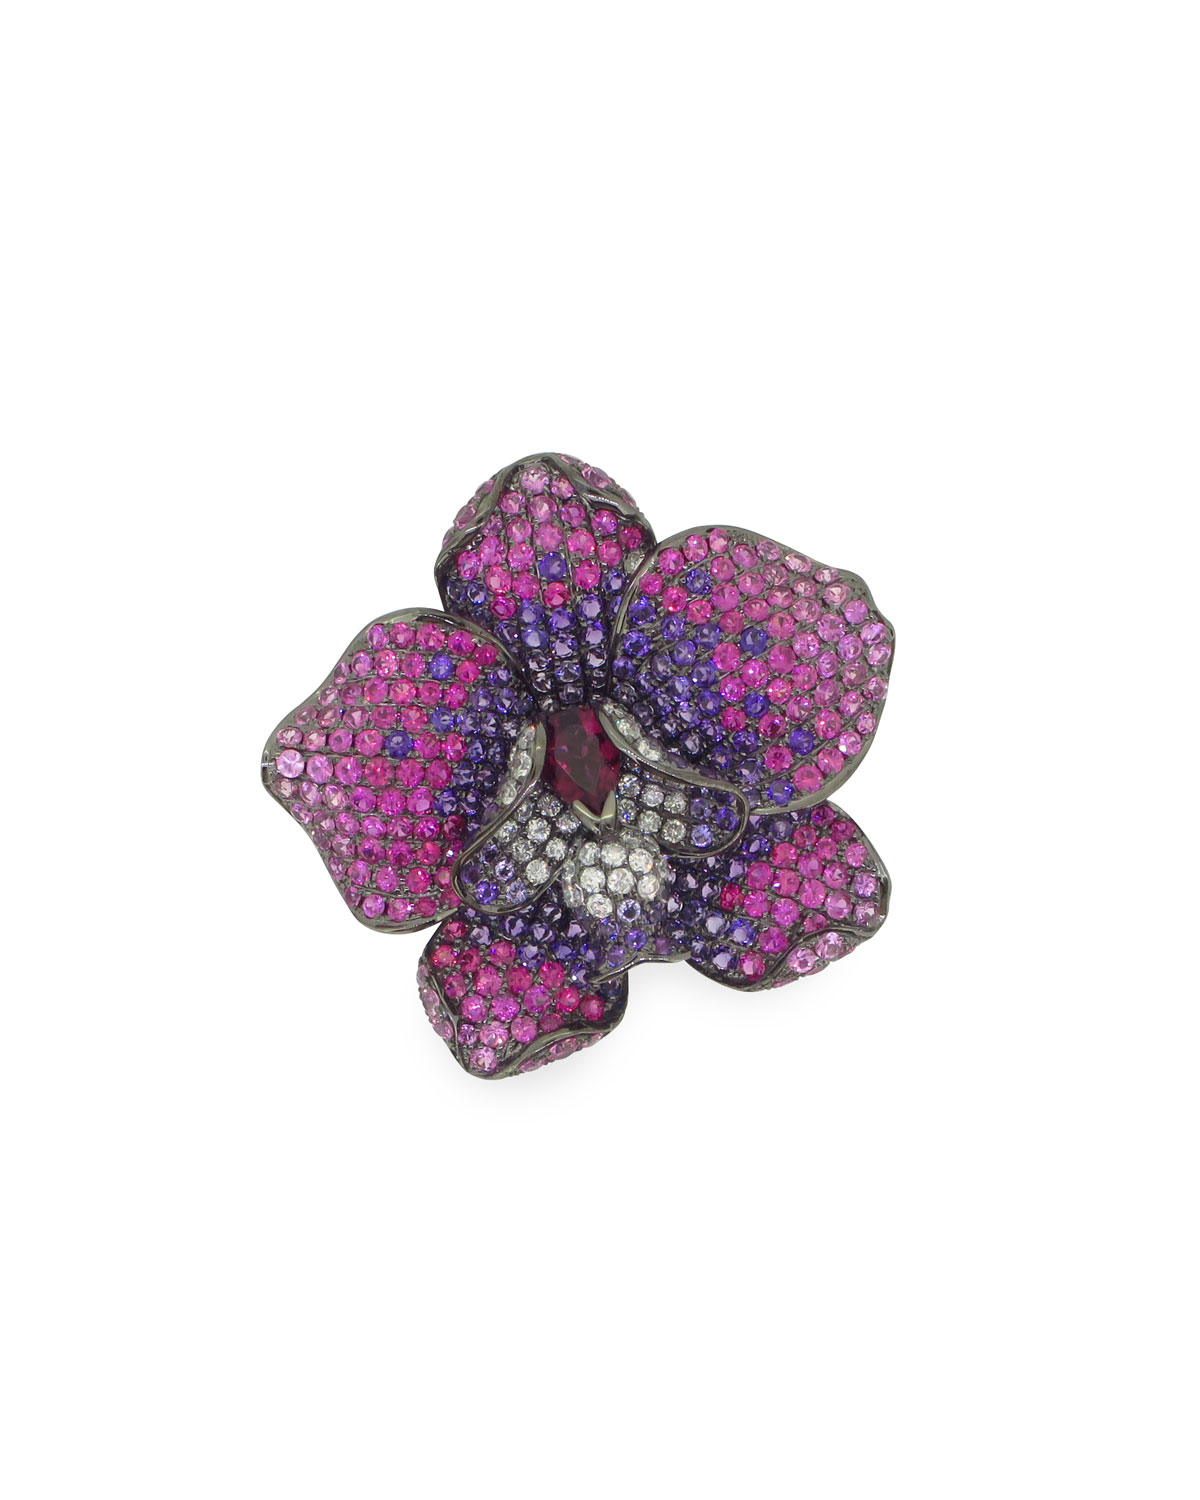 WENDY YUE 18K White Gold Pave Flower Ring, Size Us 6.75